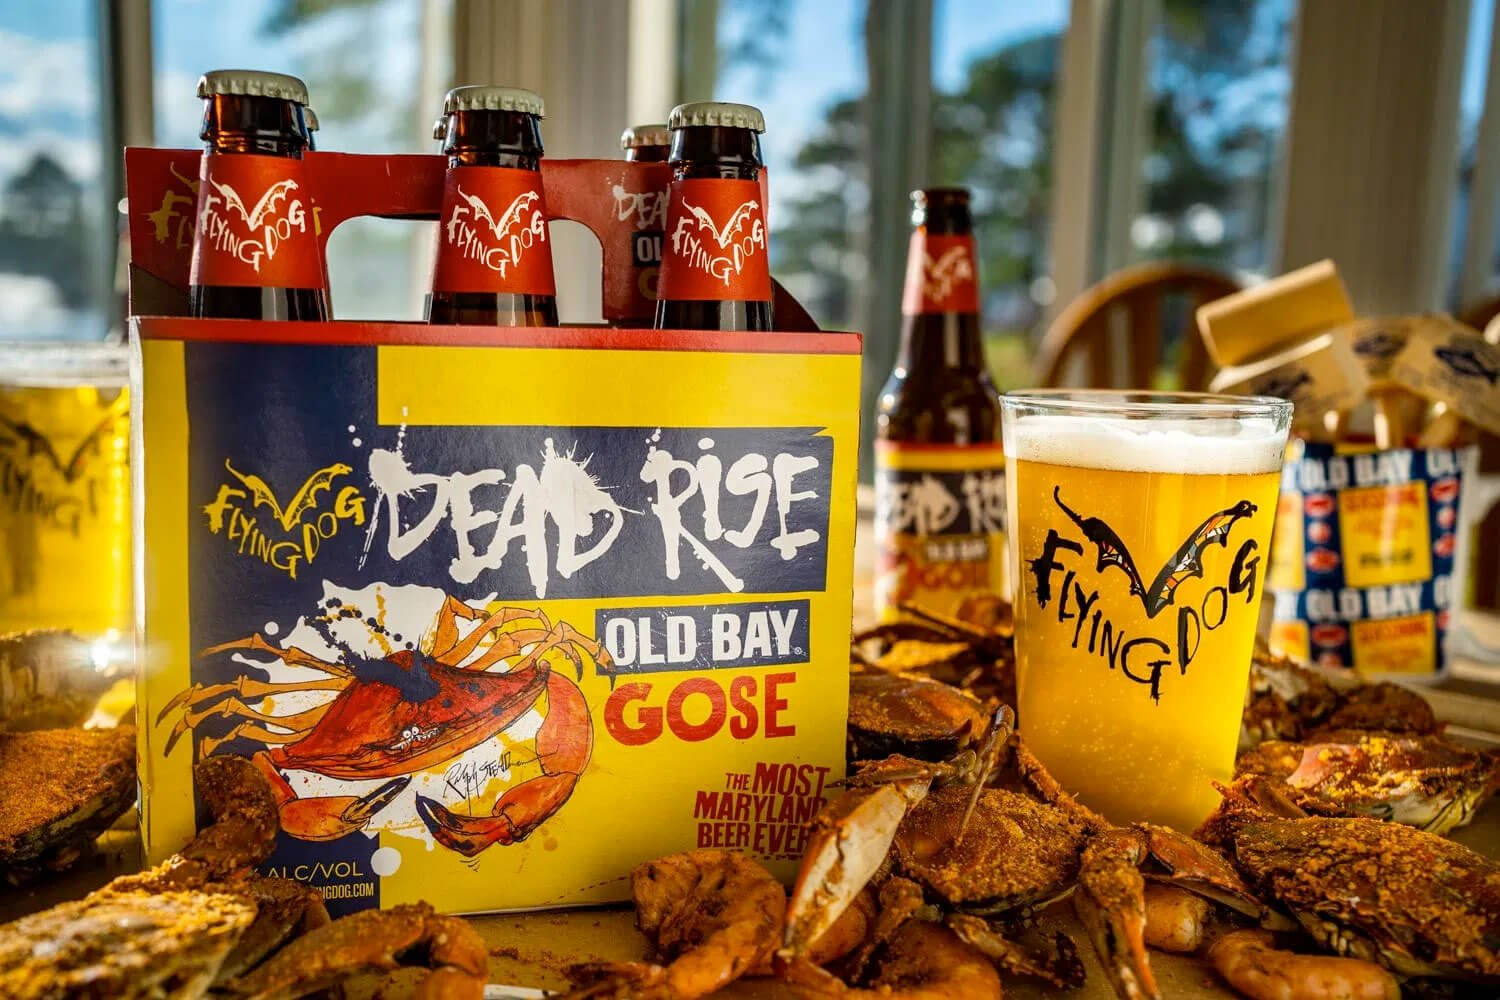 For the 5th anniversary of this innovative beer, Flying Dog Brewery has changed its Dead Rise seasonal to a gose but still features the iconic Old bay seasoning.